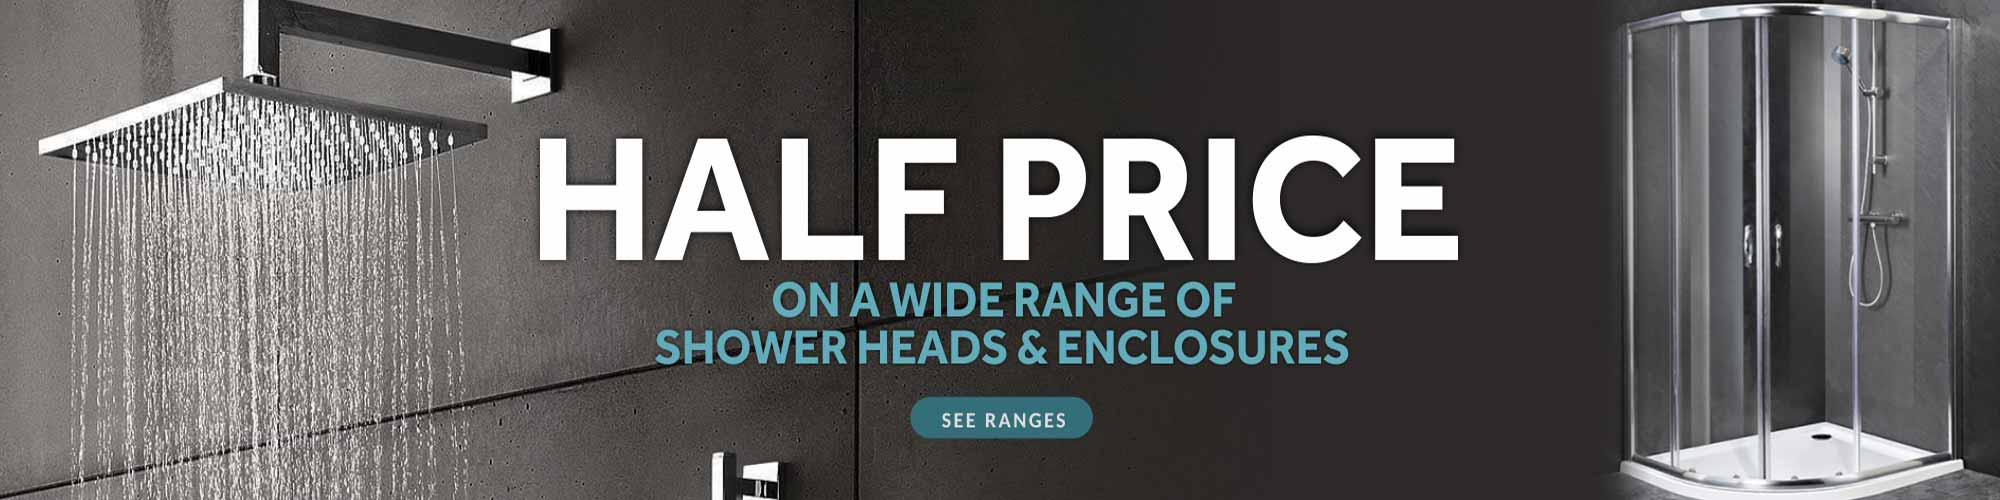 Half Price on a wide range of Shower Heads & Shower Enclosures - Shop now